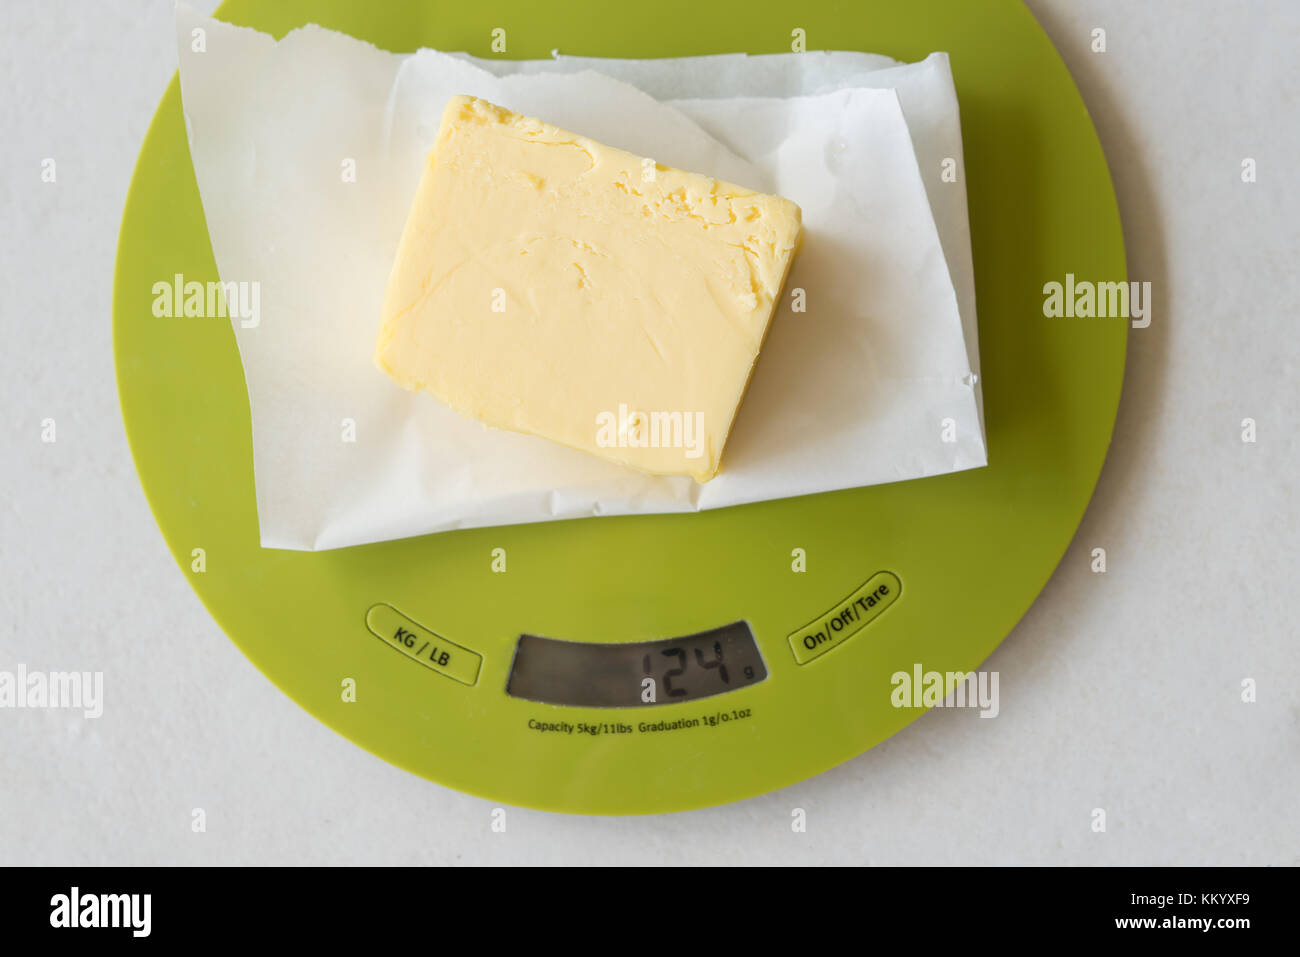 Weighting a stick of butter in preparation for cooking Stock Photo